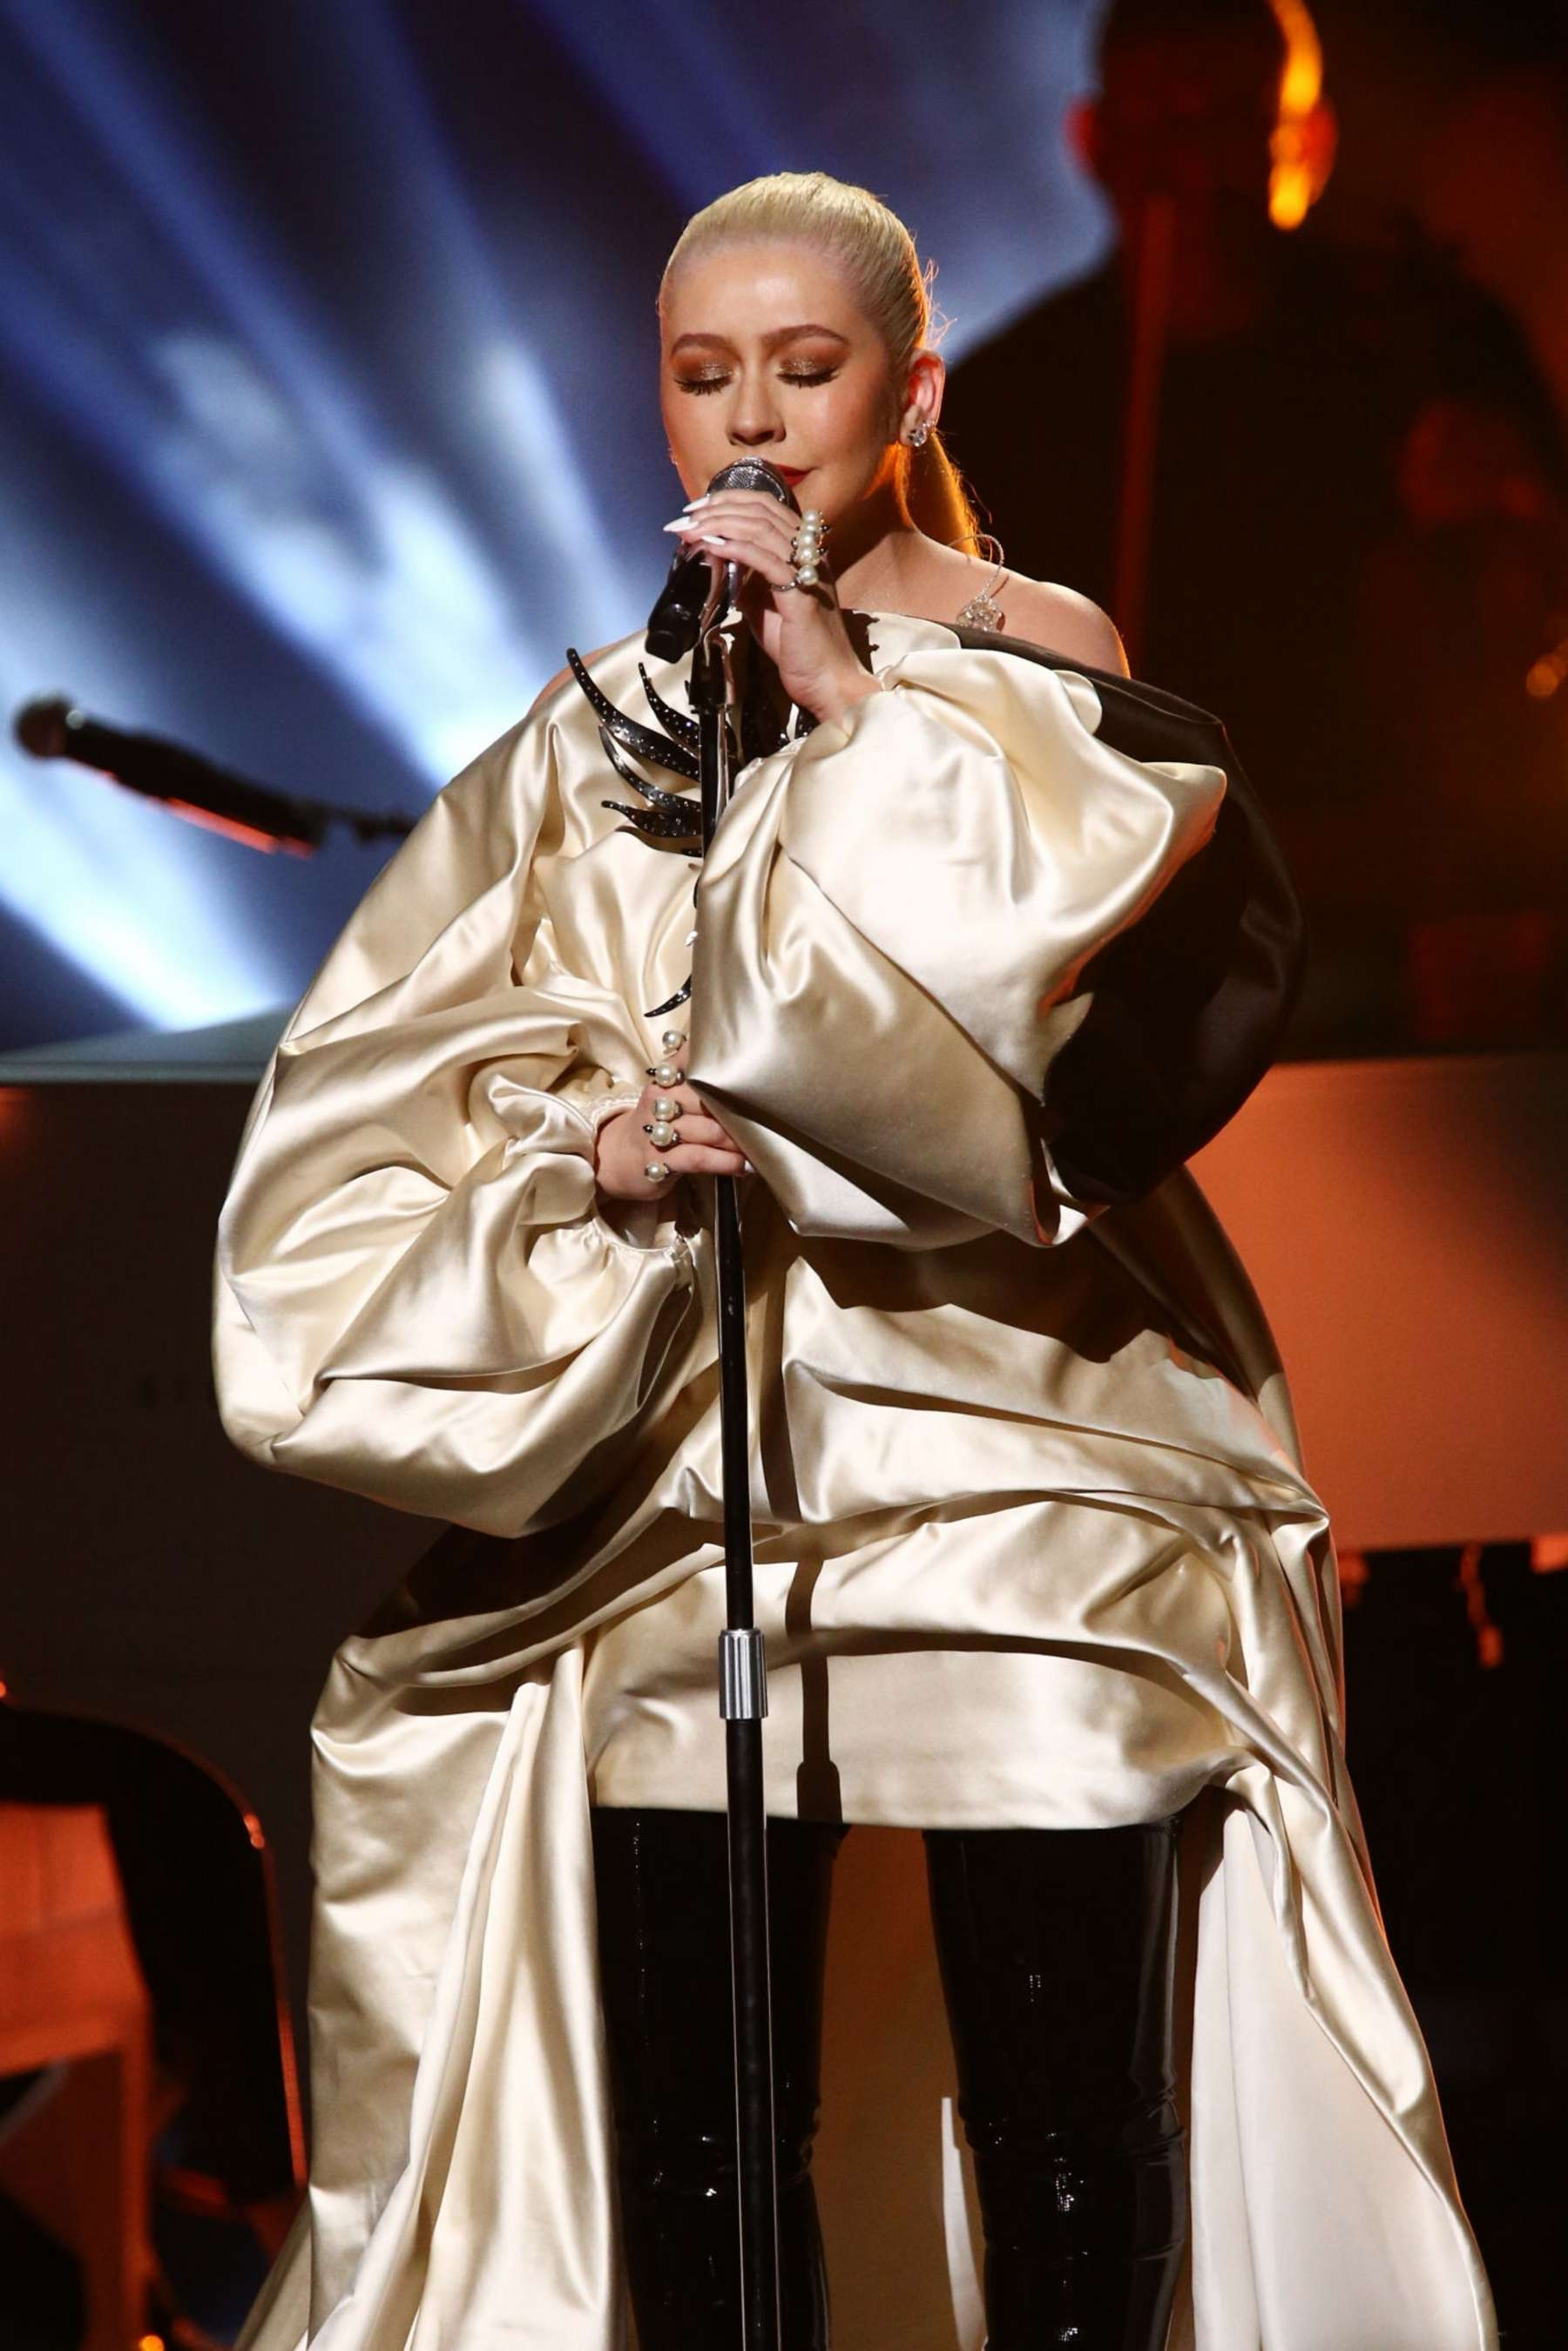 Christina_Aguilera_-_Performs_at_2019_Am